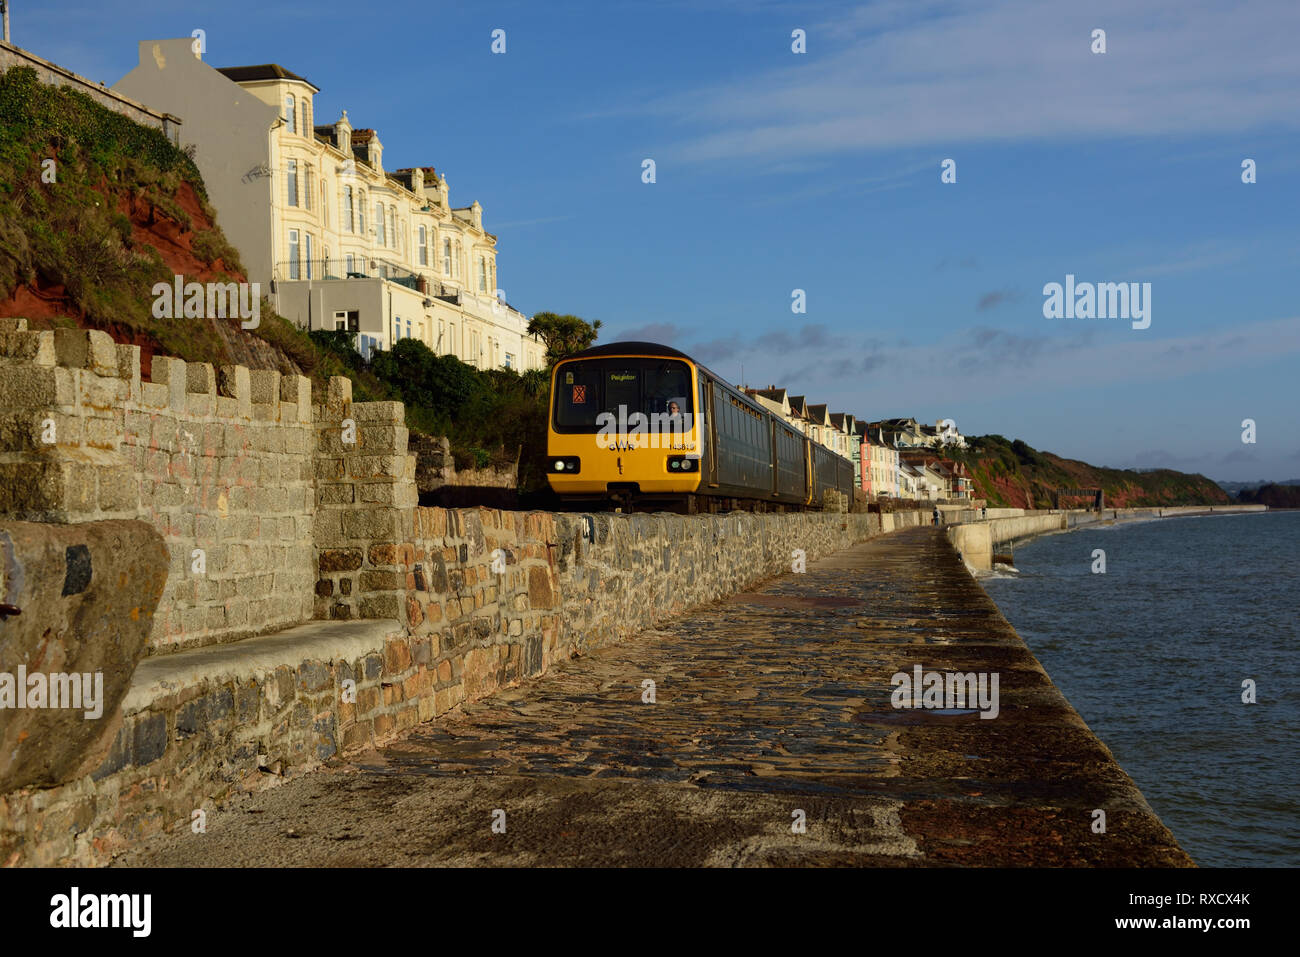 A GWR local train heading for Paignton, arriving at Dawlish. - Stock Image